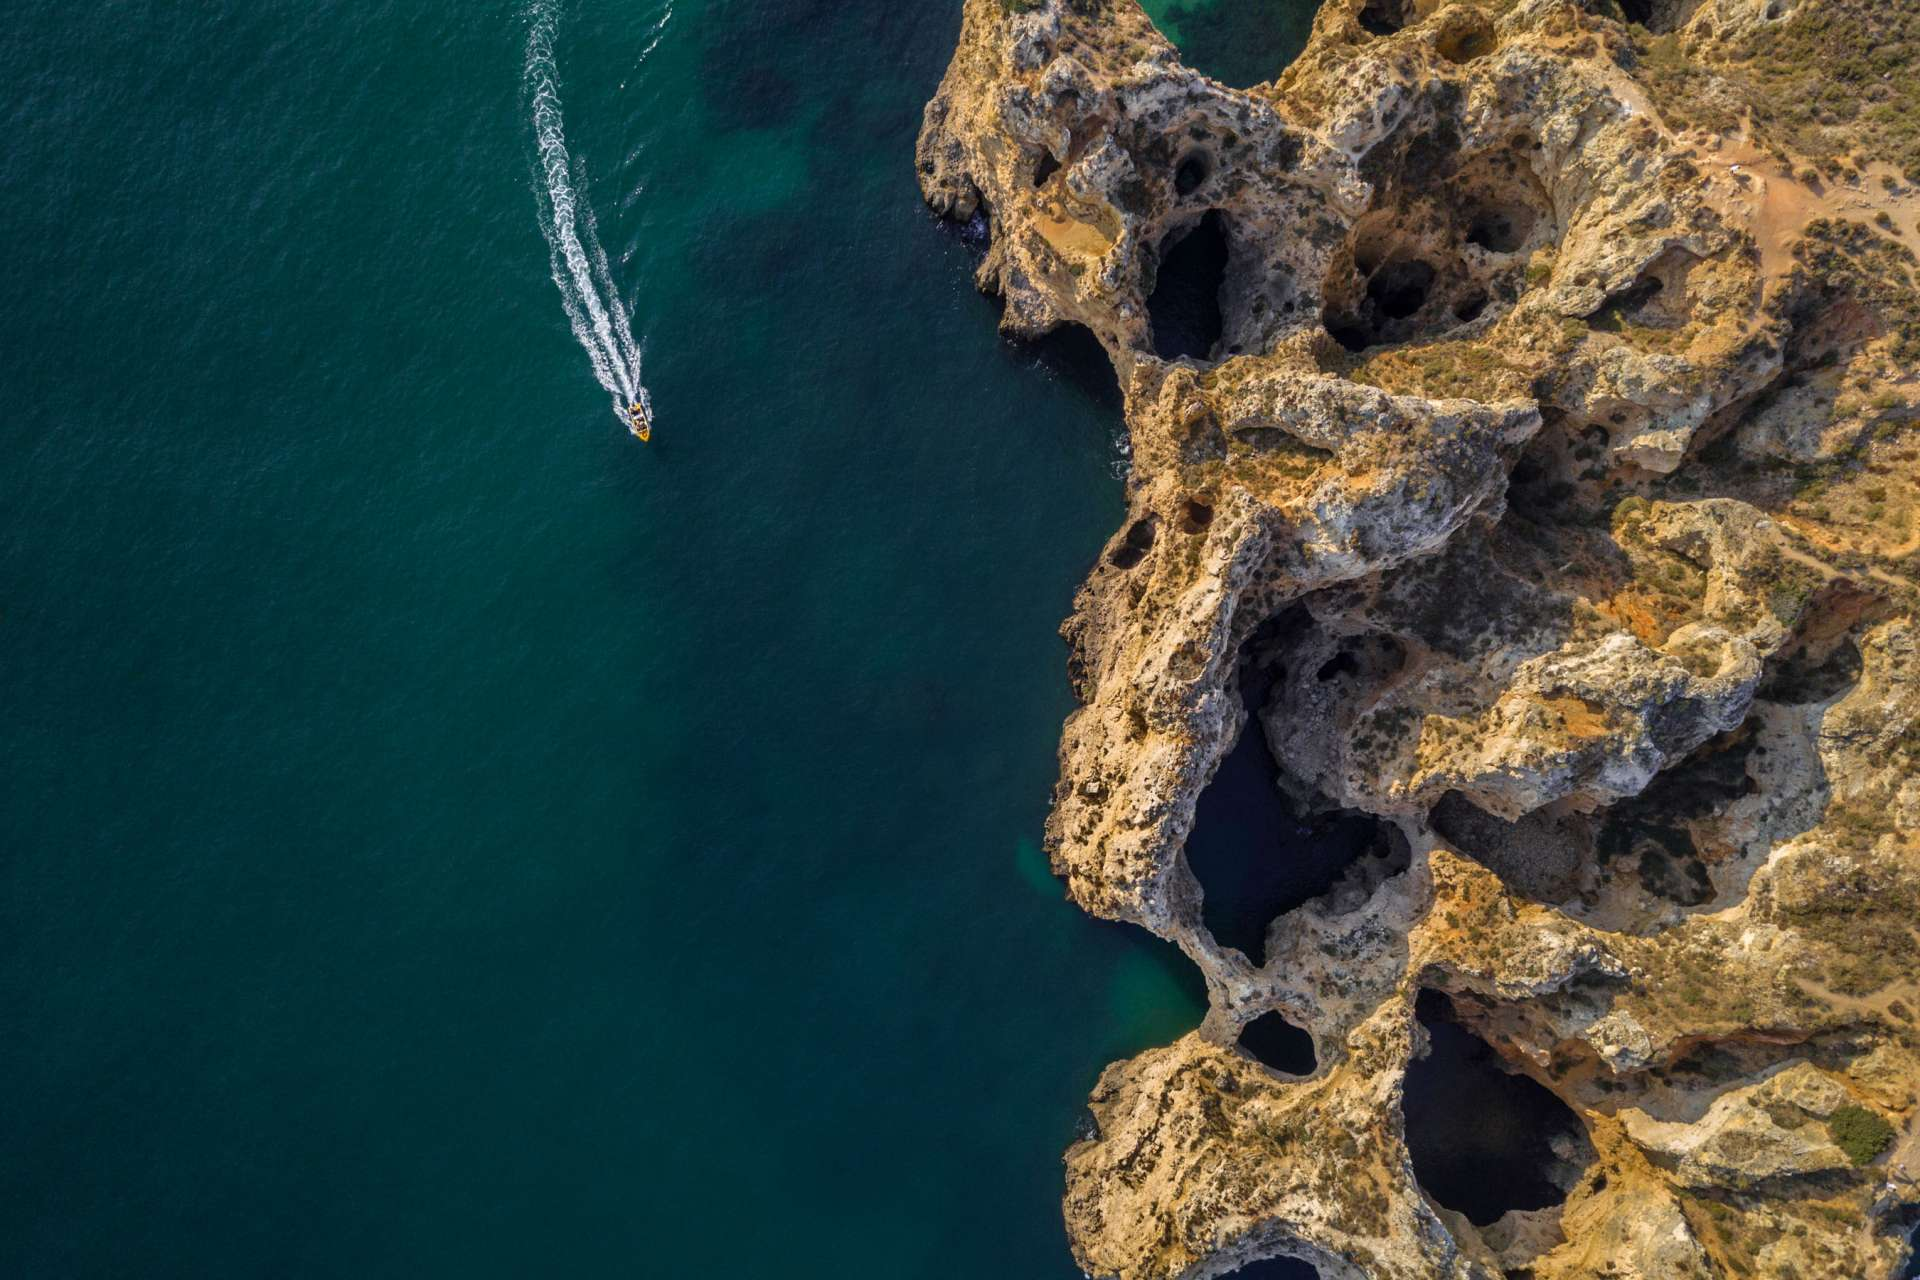 Algarve From Above Drone Photography Enrico Pescantini Between Praia dos Pinheiros and Praia do Camilo 2